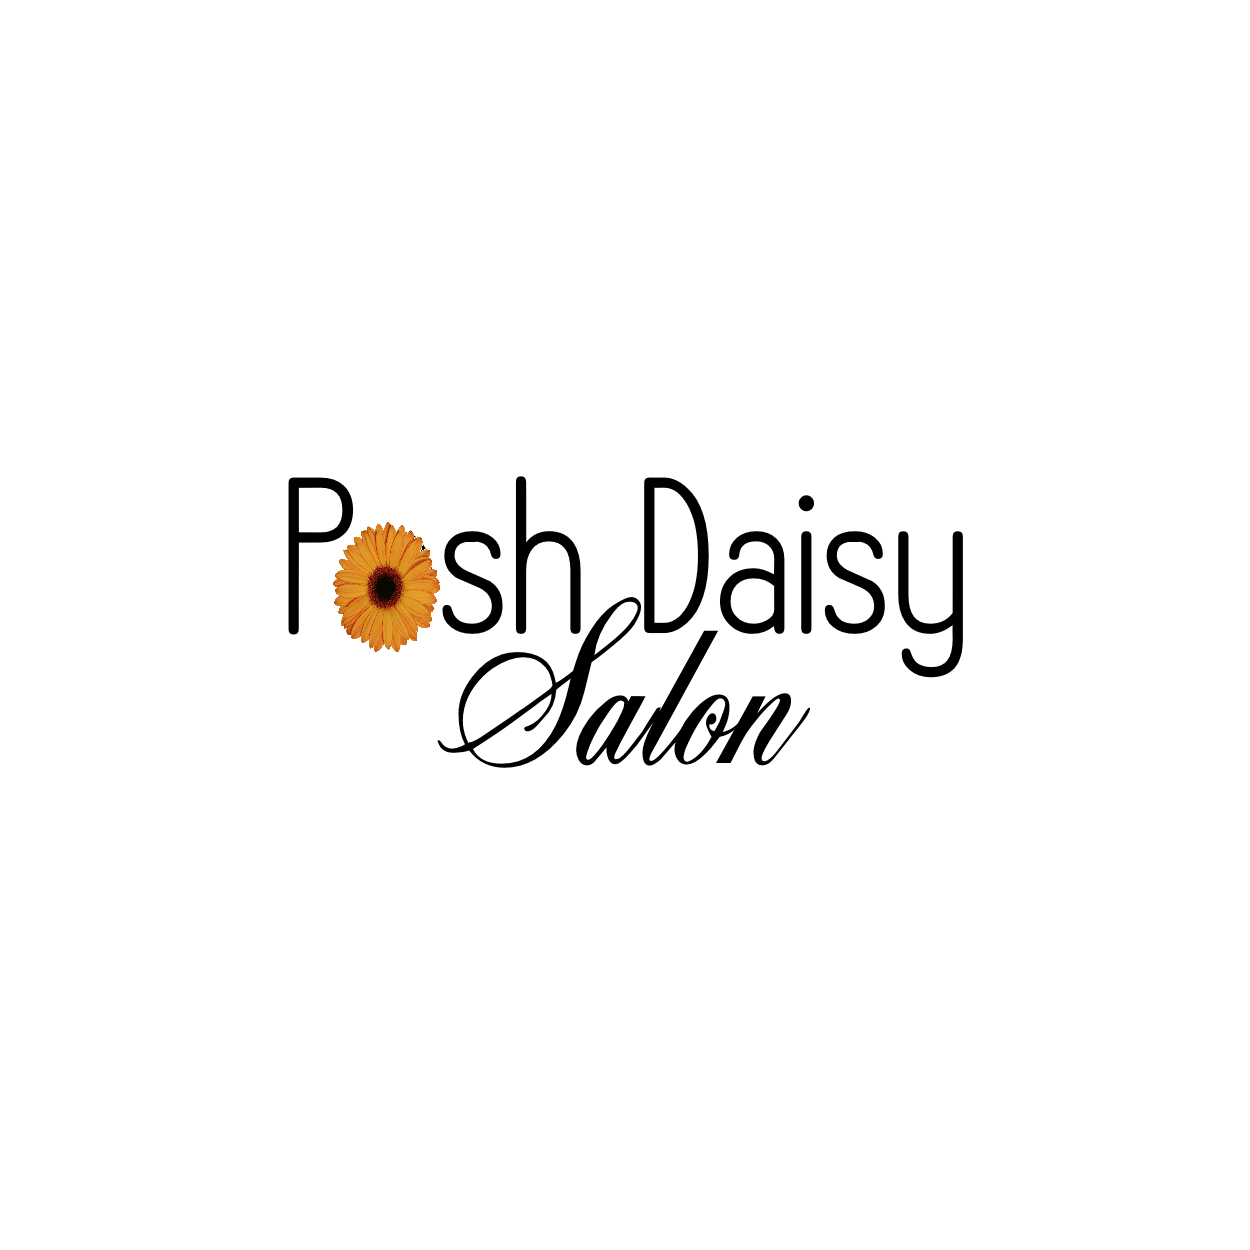 The Posh Daisy Salon Spa LLC image